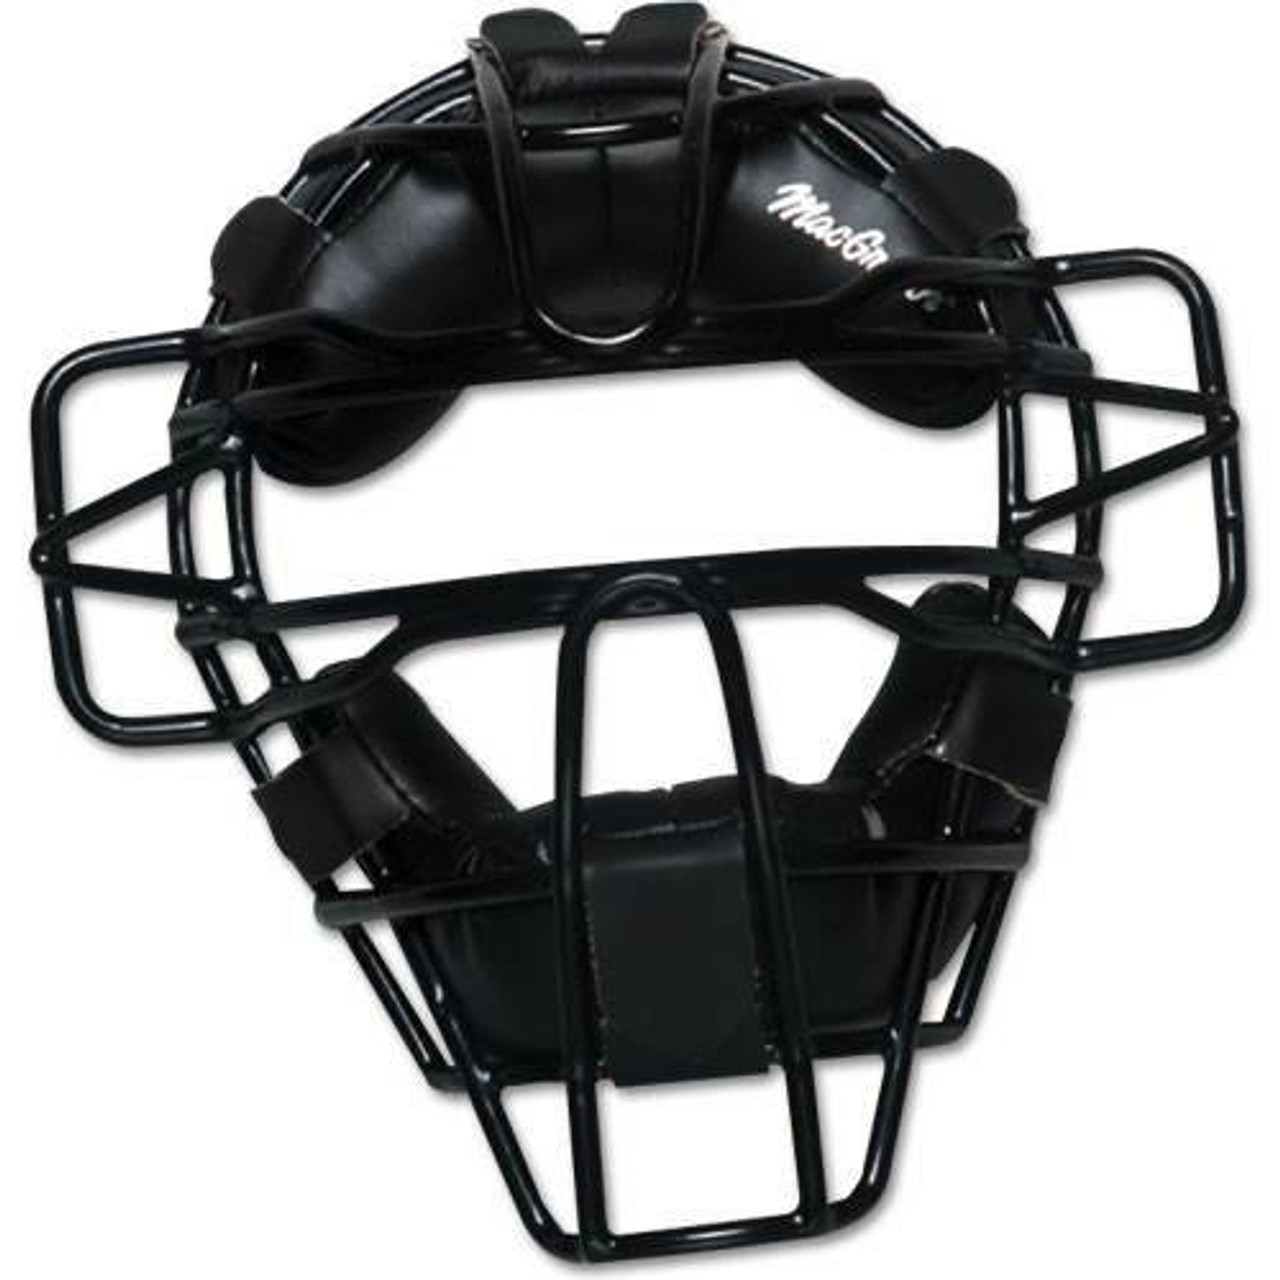 MacGregor #B29 Pro 100 Mask for baseball or softball umpire